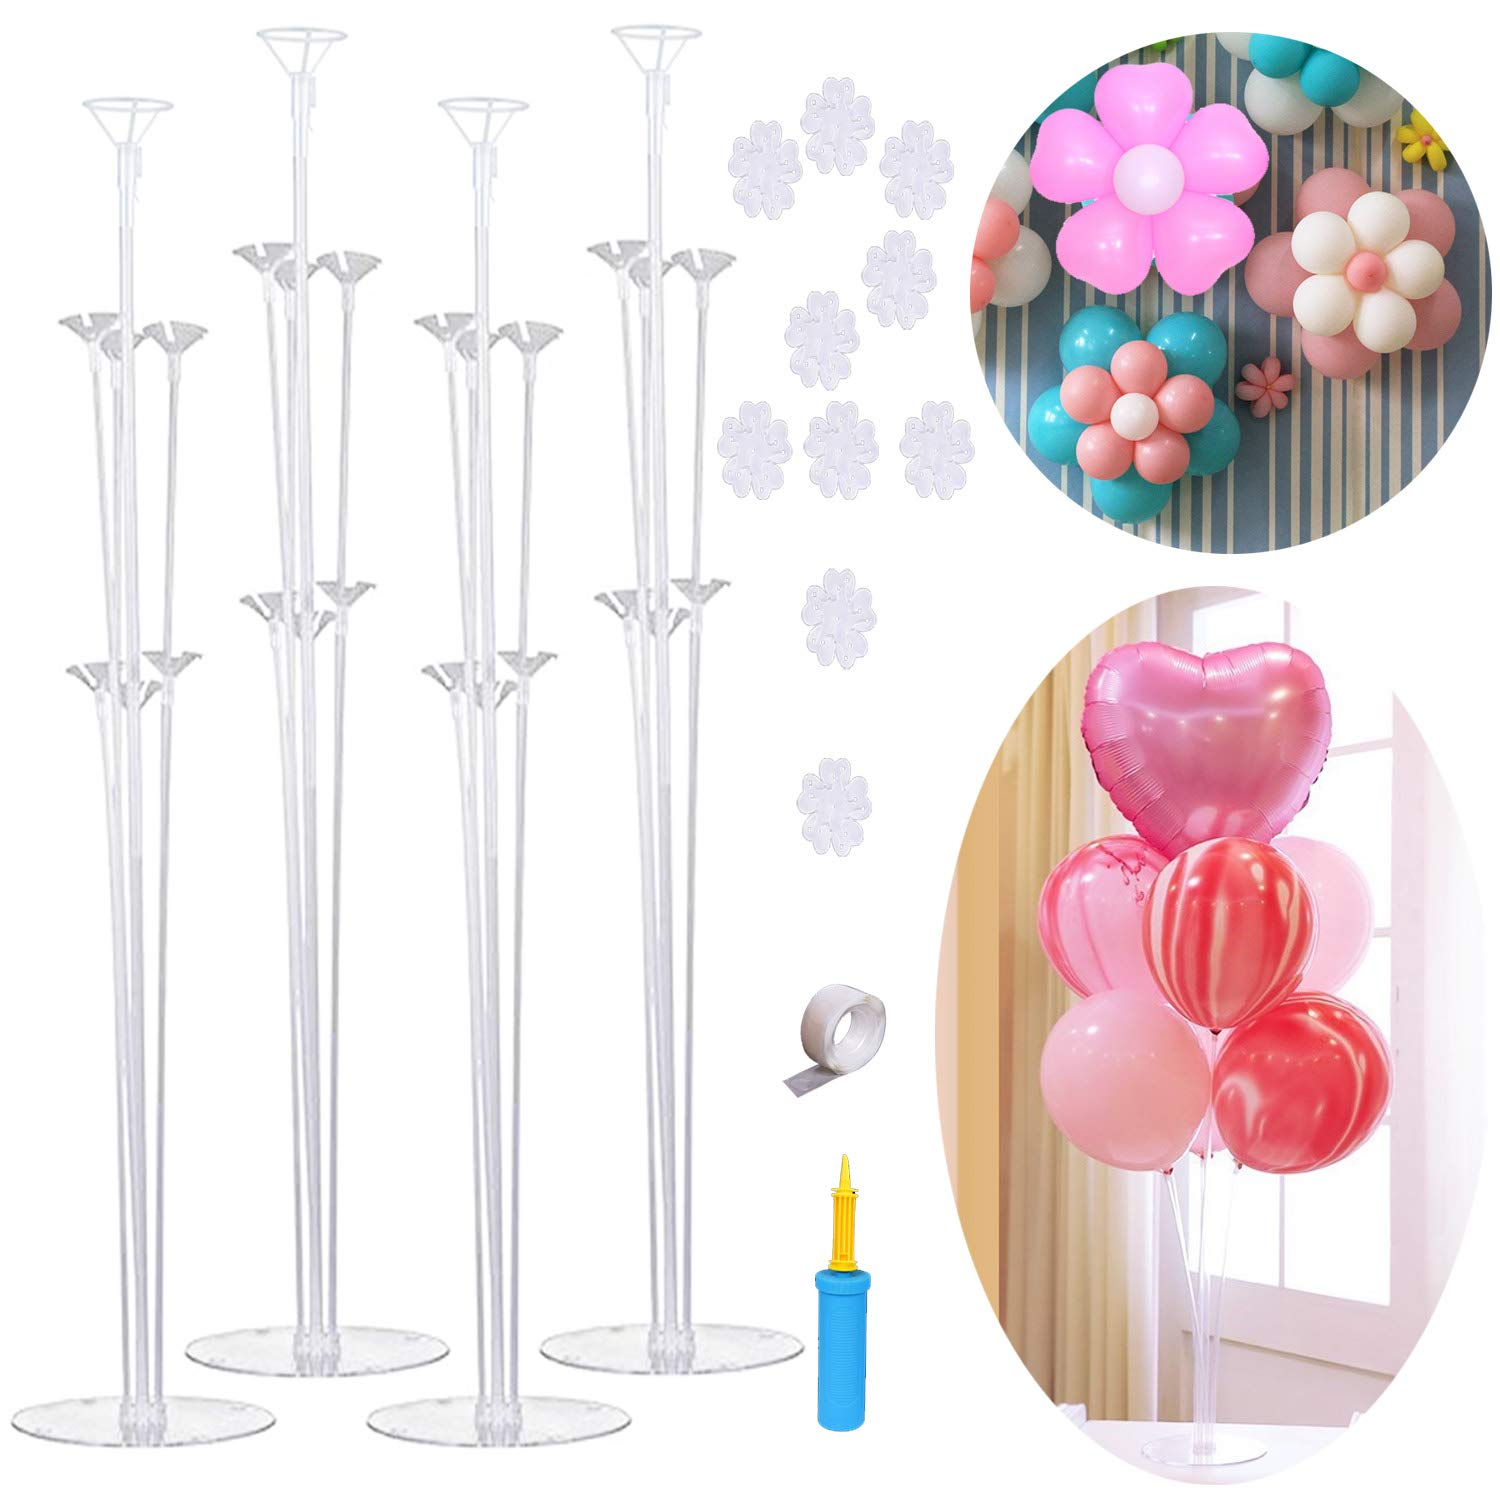 Celebrations & Occasions Balloons Wedding Decoration Balloon Column Tool Table Float Baby Shower Home Holder Stand